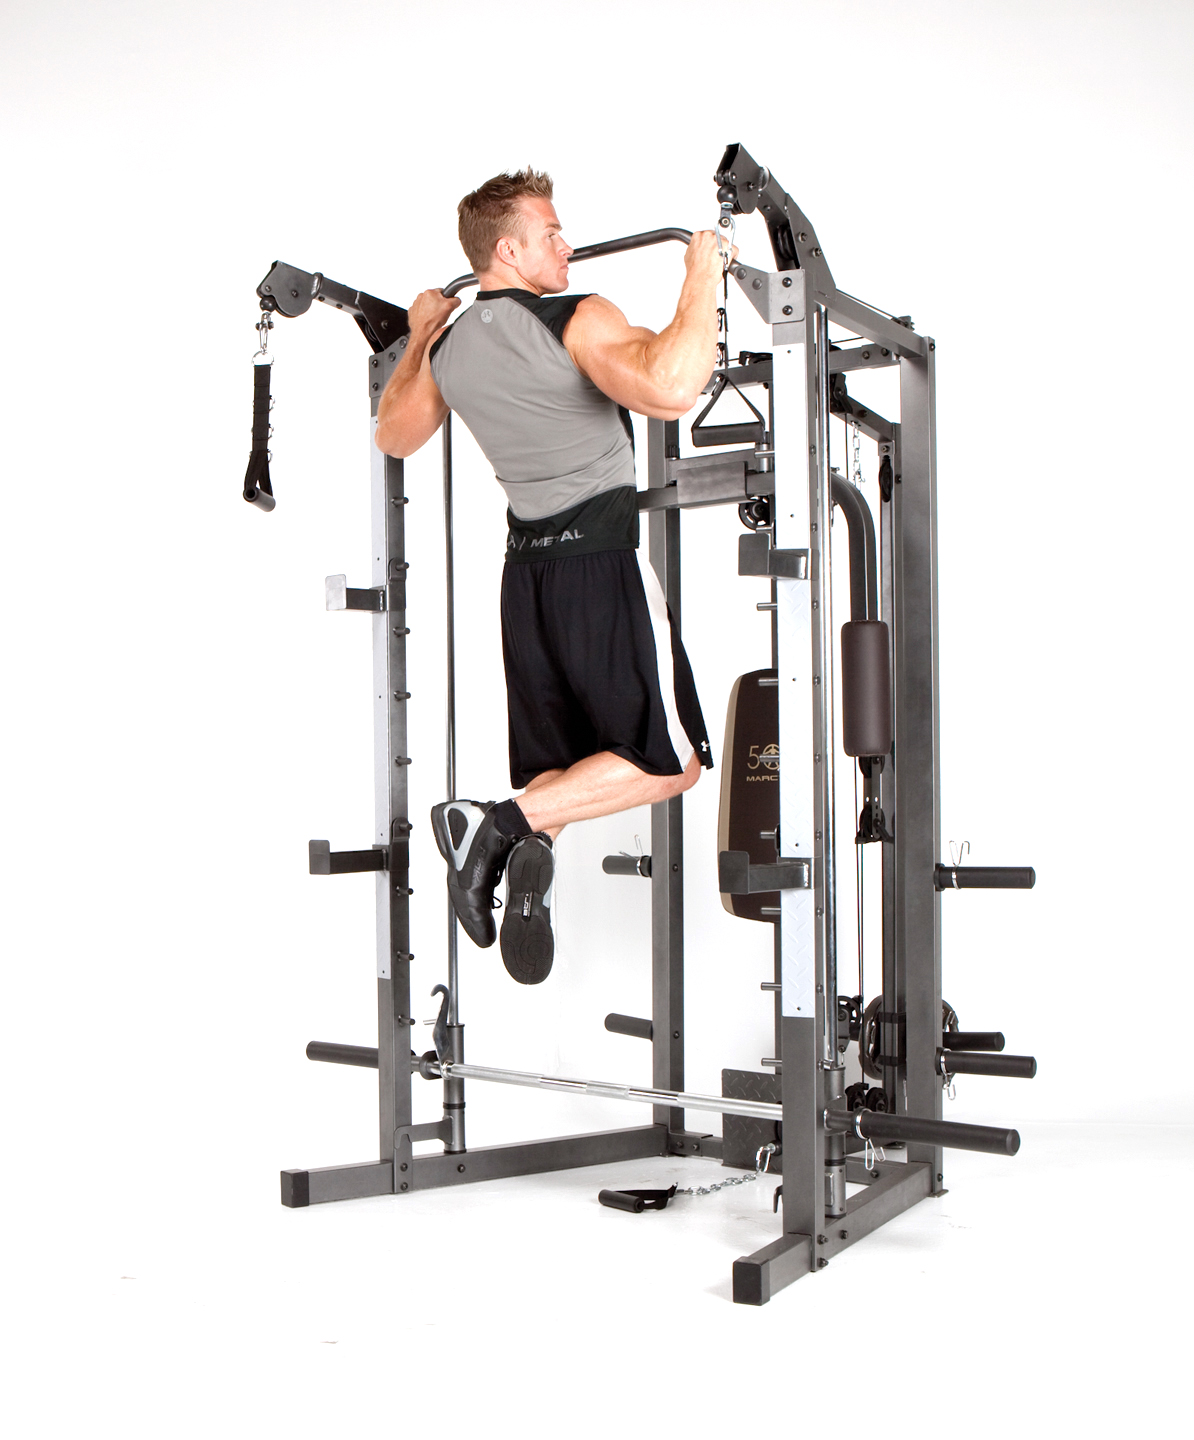 Marcy Combo Smith Heavy-Duty Total Body Strength Home Gym